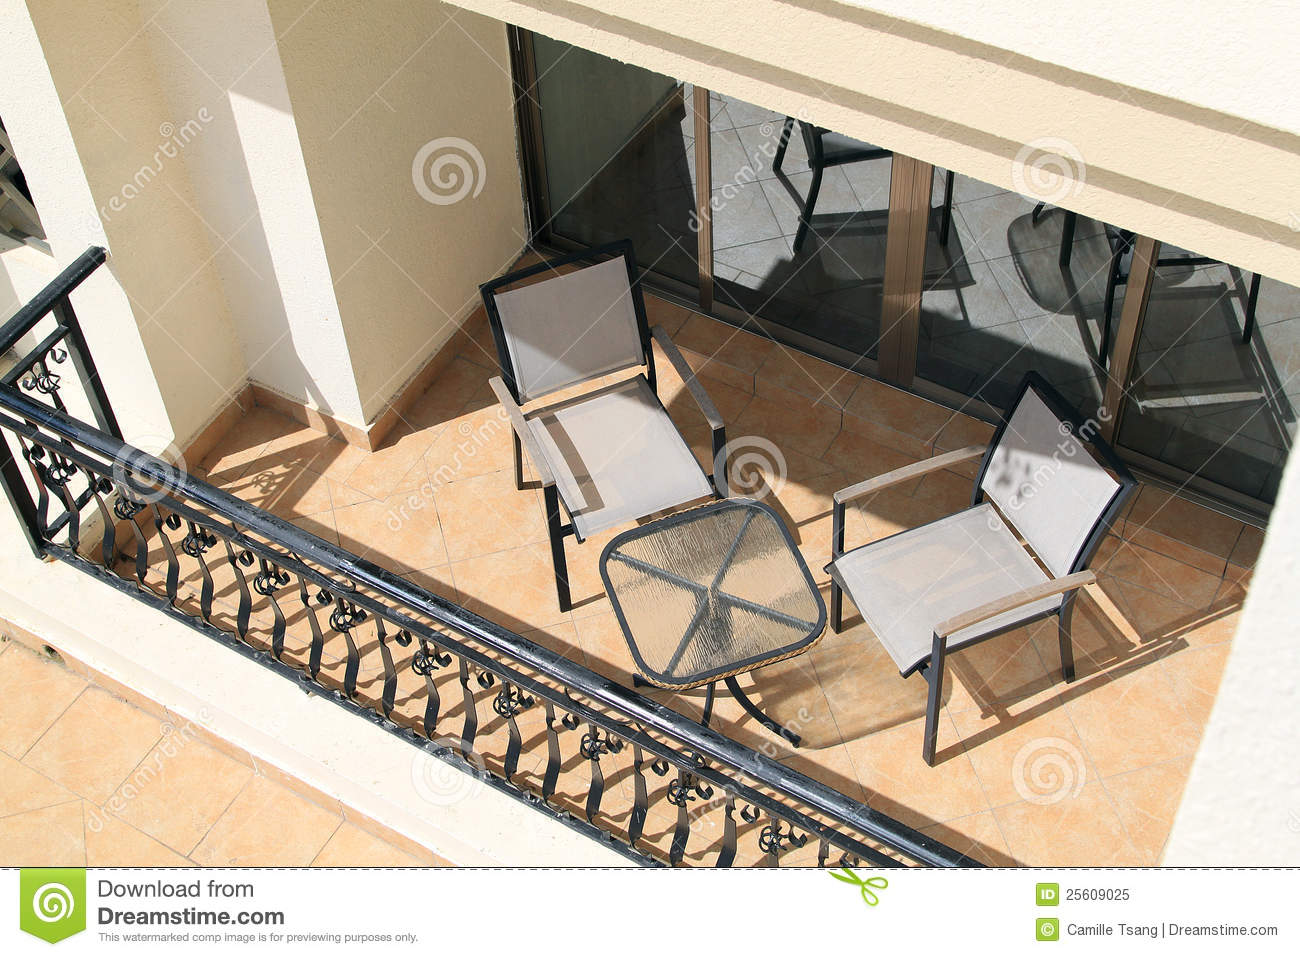 Muebles Para Balcon Balcony With Furniture Royalty Free Stock Photo - Image